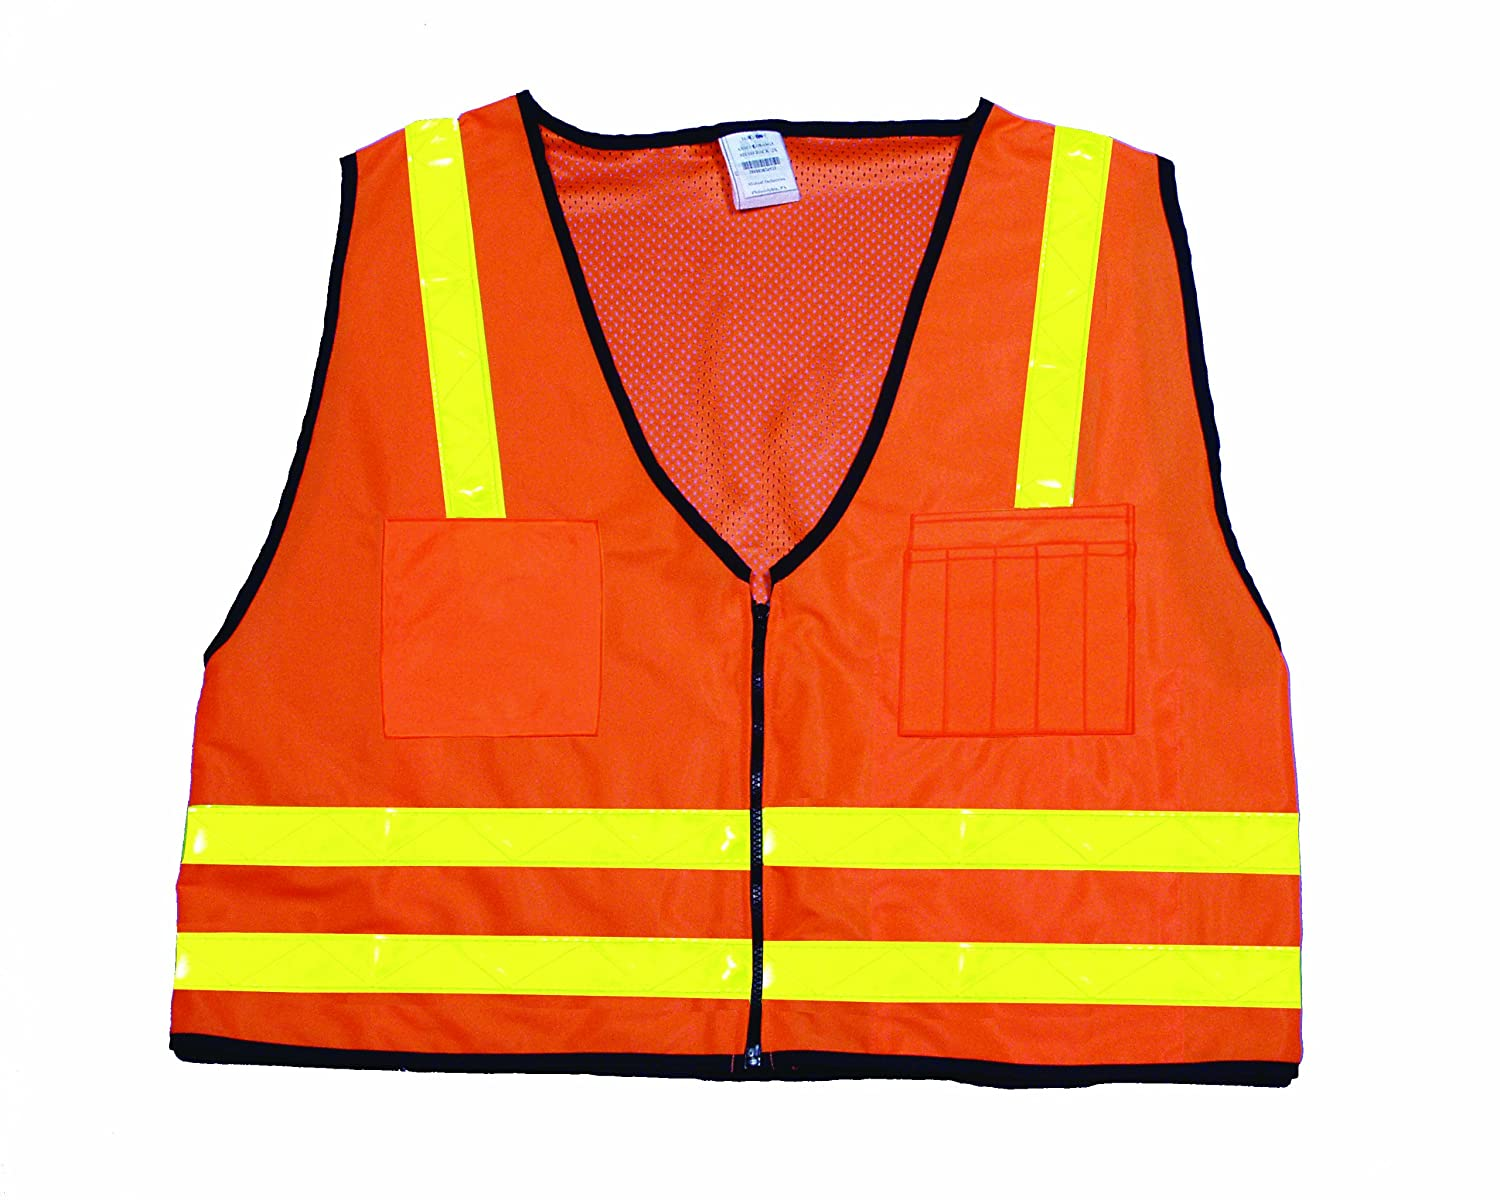 Mutual 16310 High Visibilty Polyester ANSI Class 2 Mesh Back Surveyor Safety Vest with Multiple Pockets Lime 3X-Large